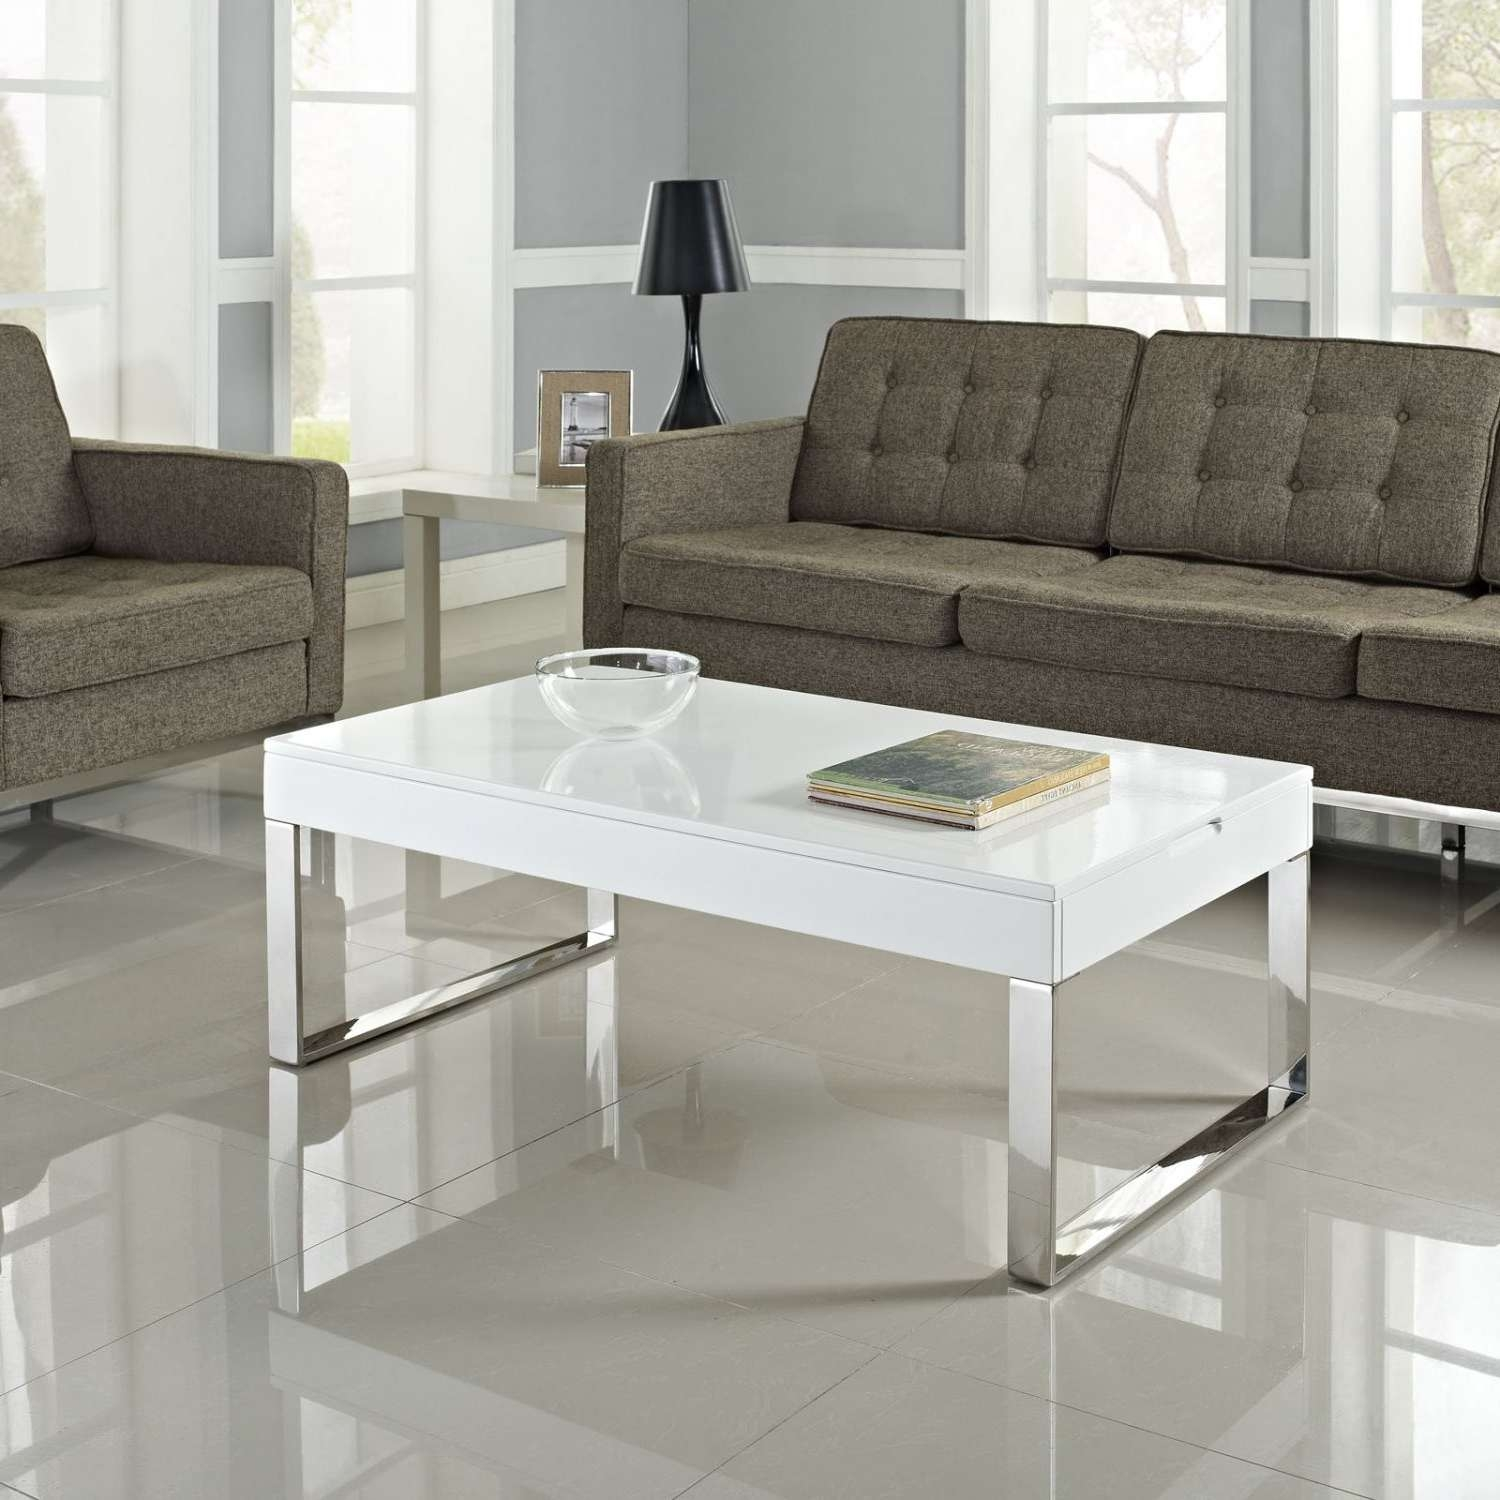 White Gloss Lift Coffee Table – All Furniture Usa Intended For Best And Newest High Gloss Coffee Tables (View 18 of 20)